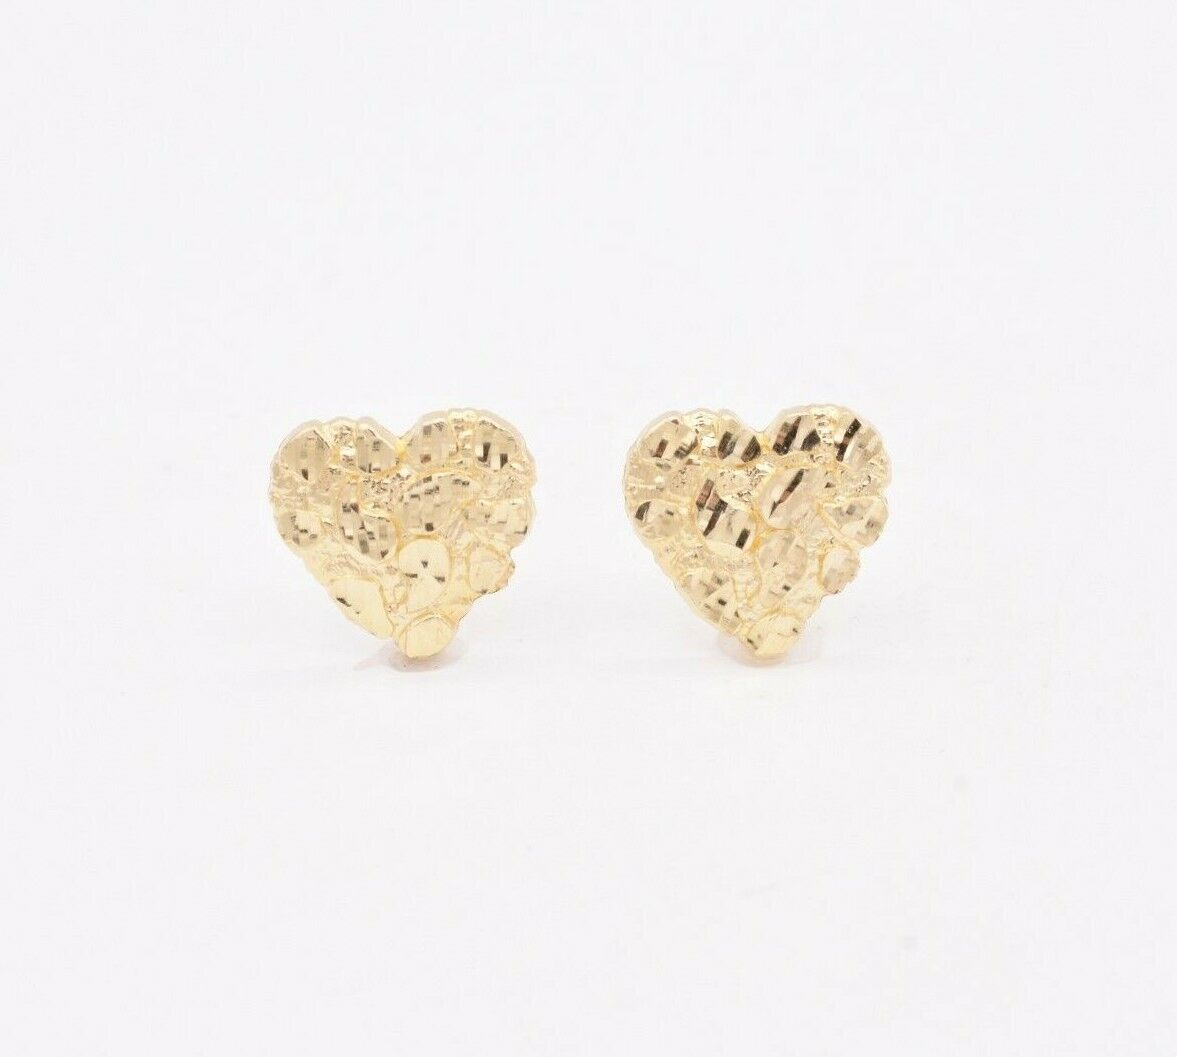 Real Solid 10K Yellow Gold Large Nugget Diamond Cut Stud Earrings